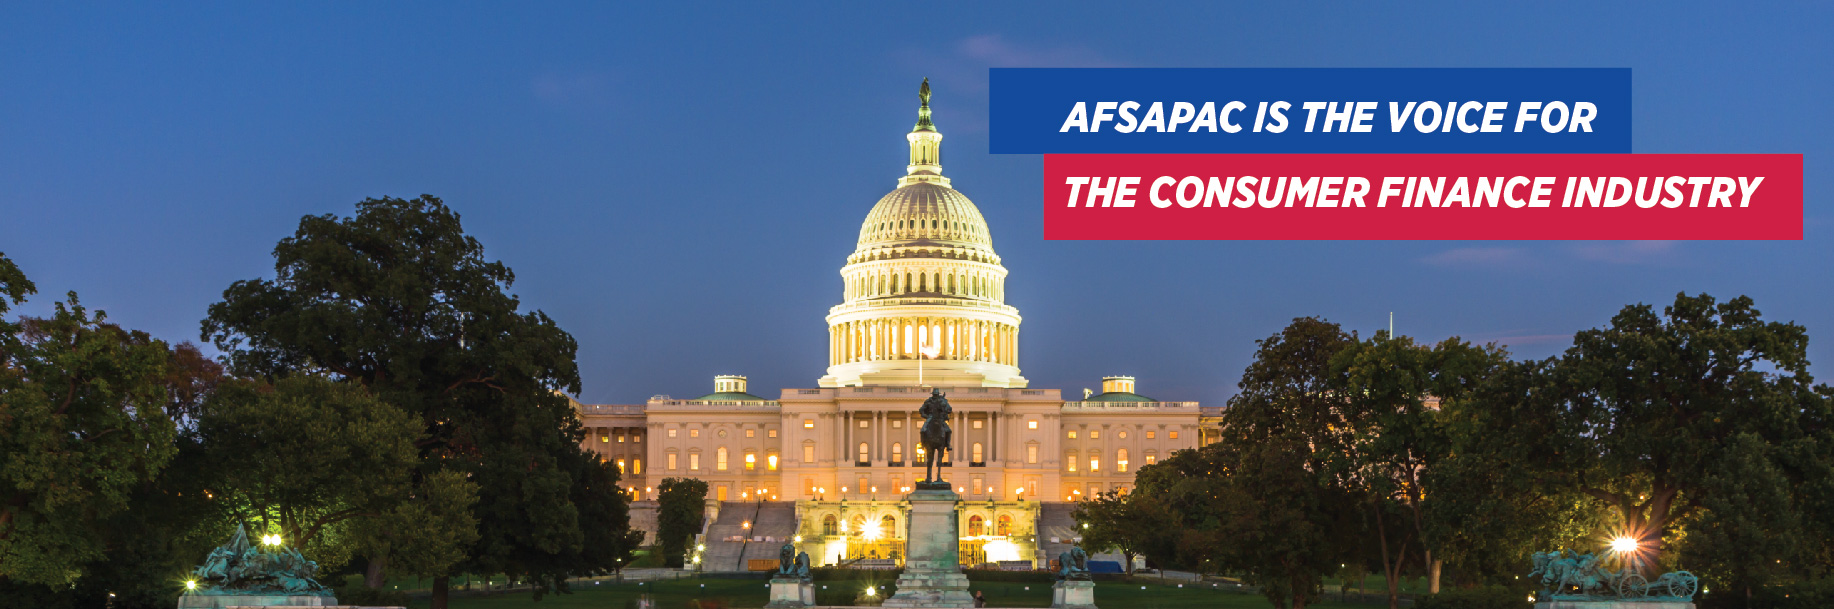 AFSA PAC is the voice for the consumer finance industry